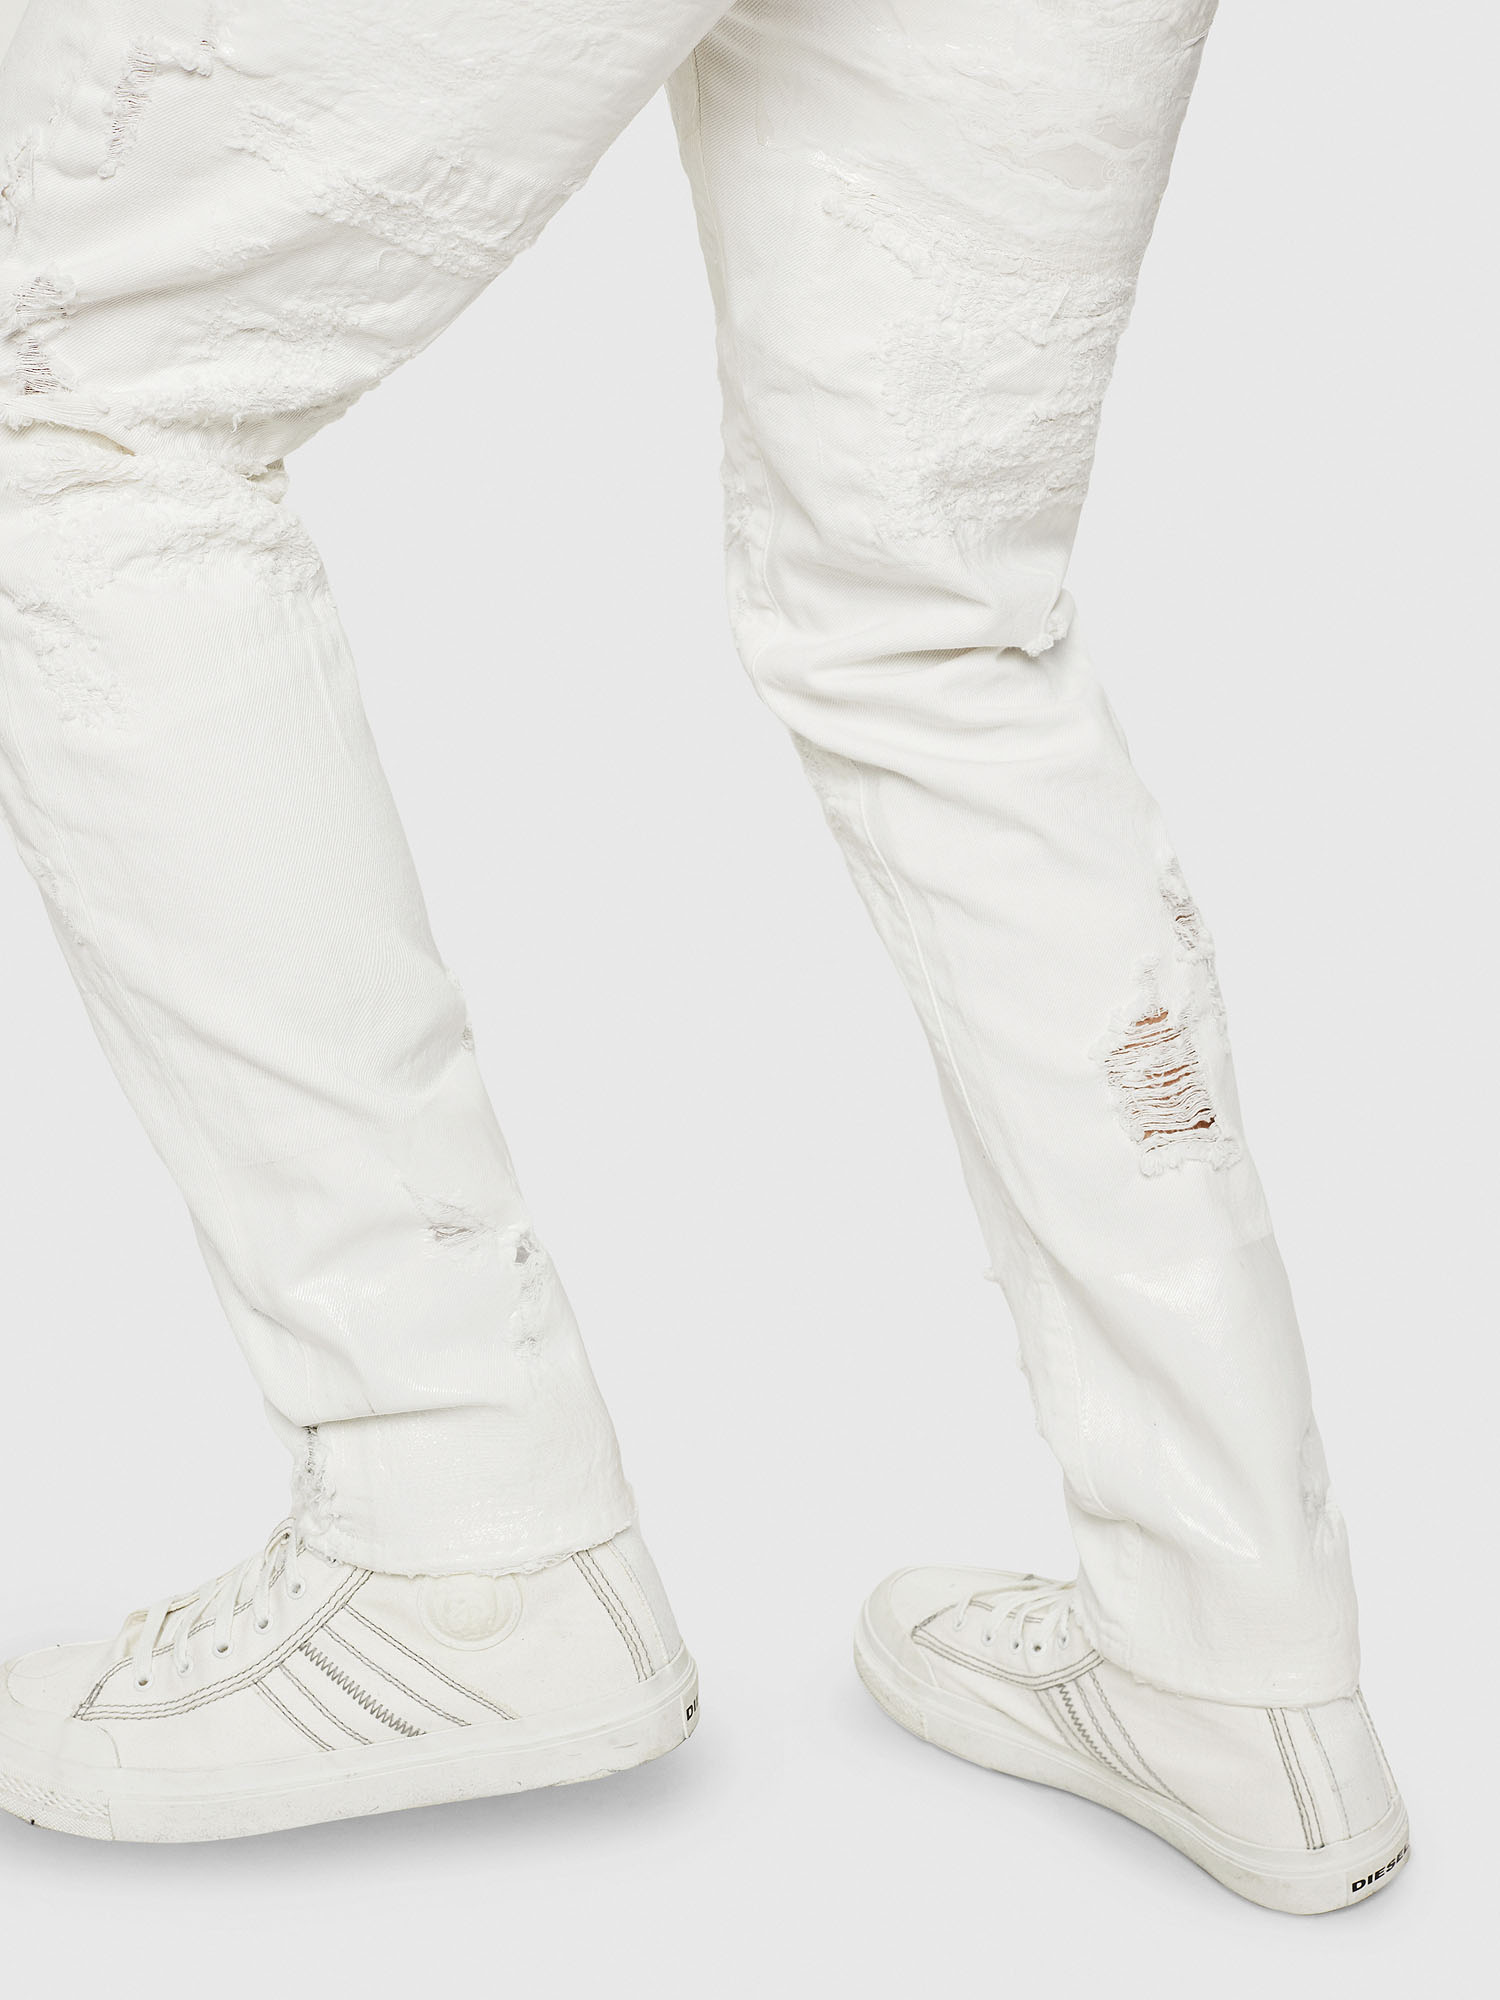 Diesel - Mharky 069GY,  - Jeans - Image 6